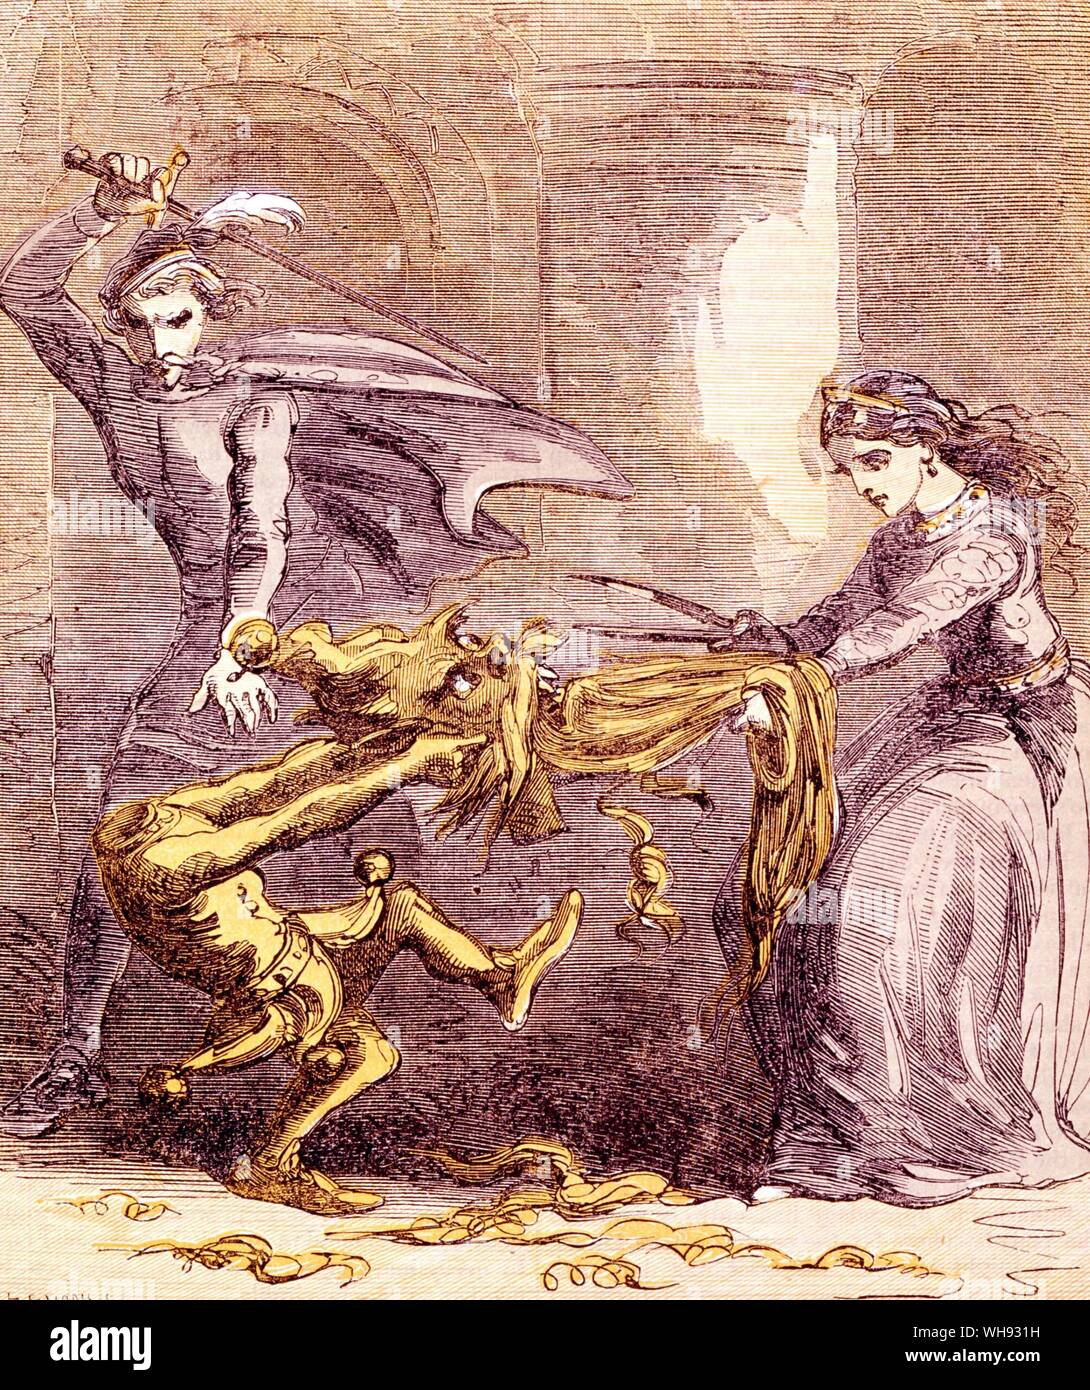 The Yellow Dwarf comes to grief when the princess attacks his beard with magic scissors. Colour wood-engraving by Edmund Evans, after the design by 'Phiz' from Grimm's Goblins, 1861.. Stock Photo